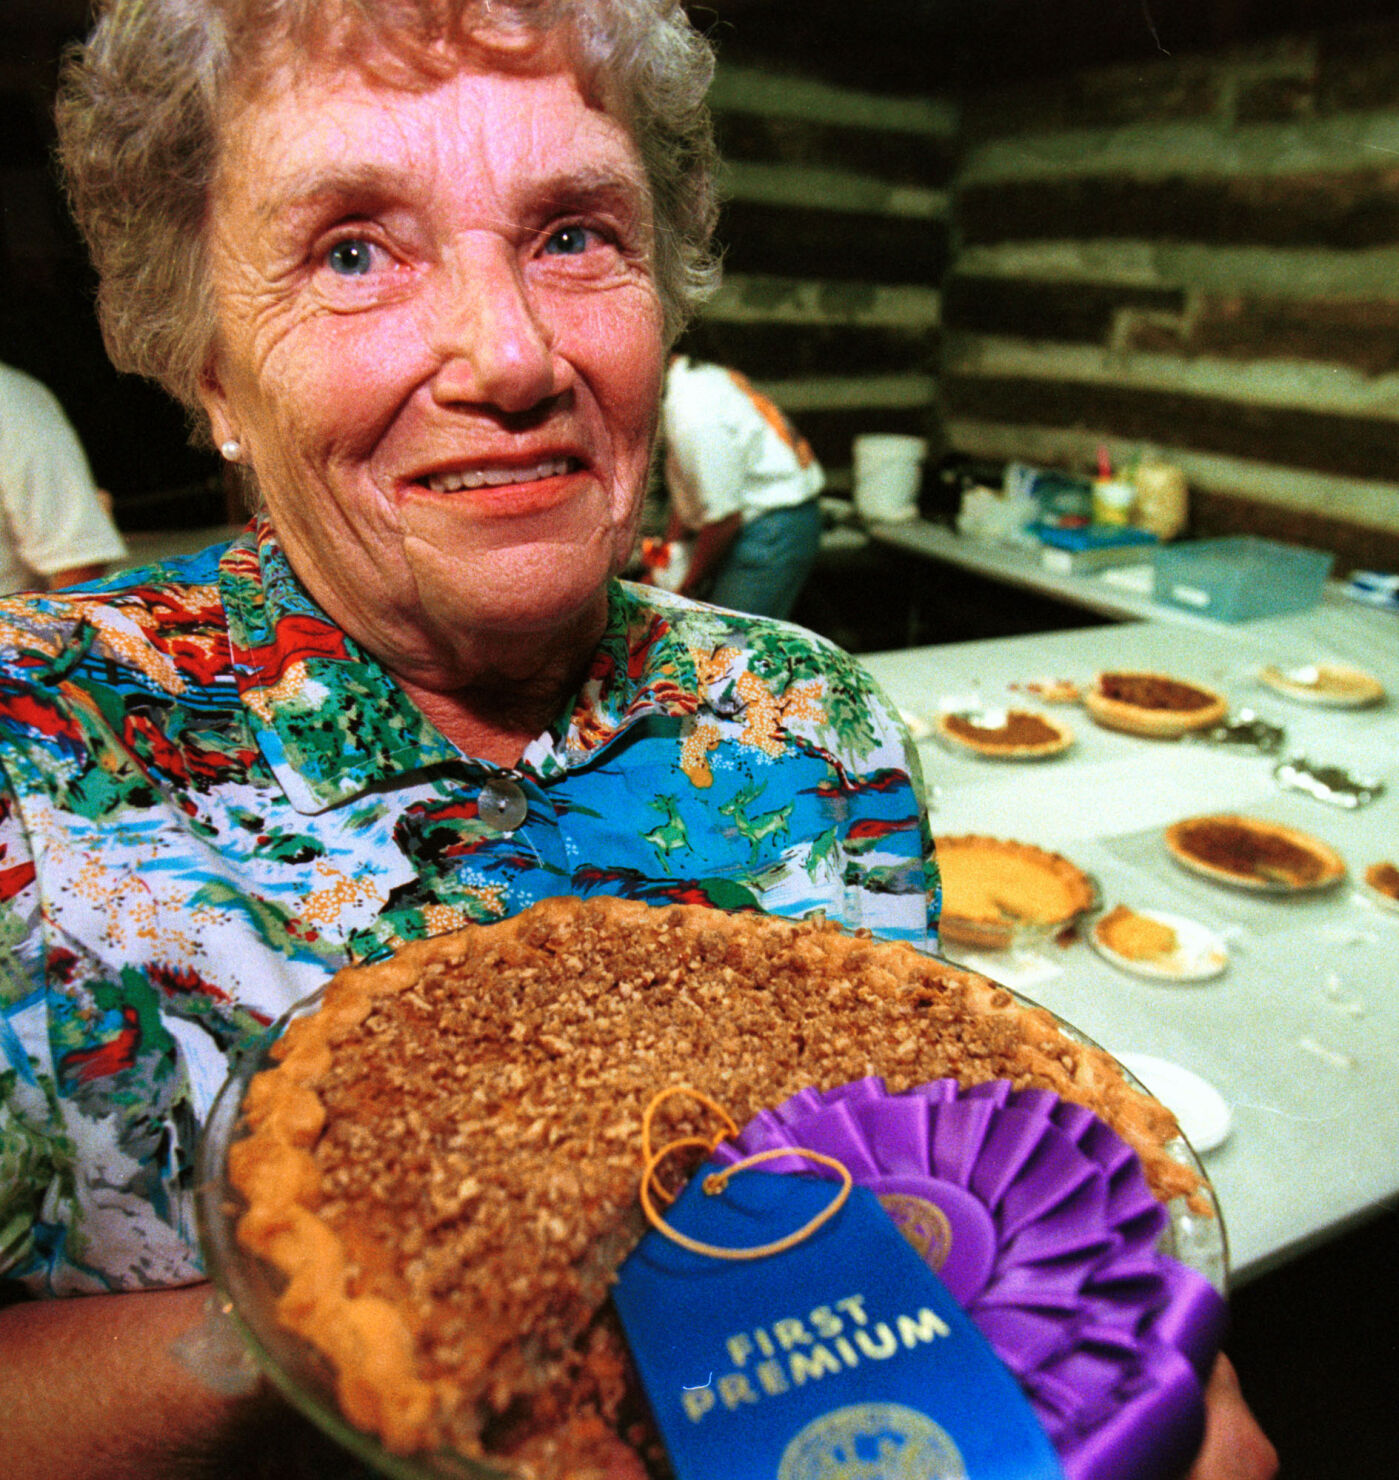 A Look Back At Some Great Pies And Memories From Past Fairs Dining Journalnow Com